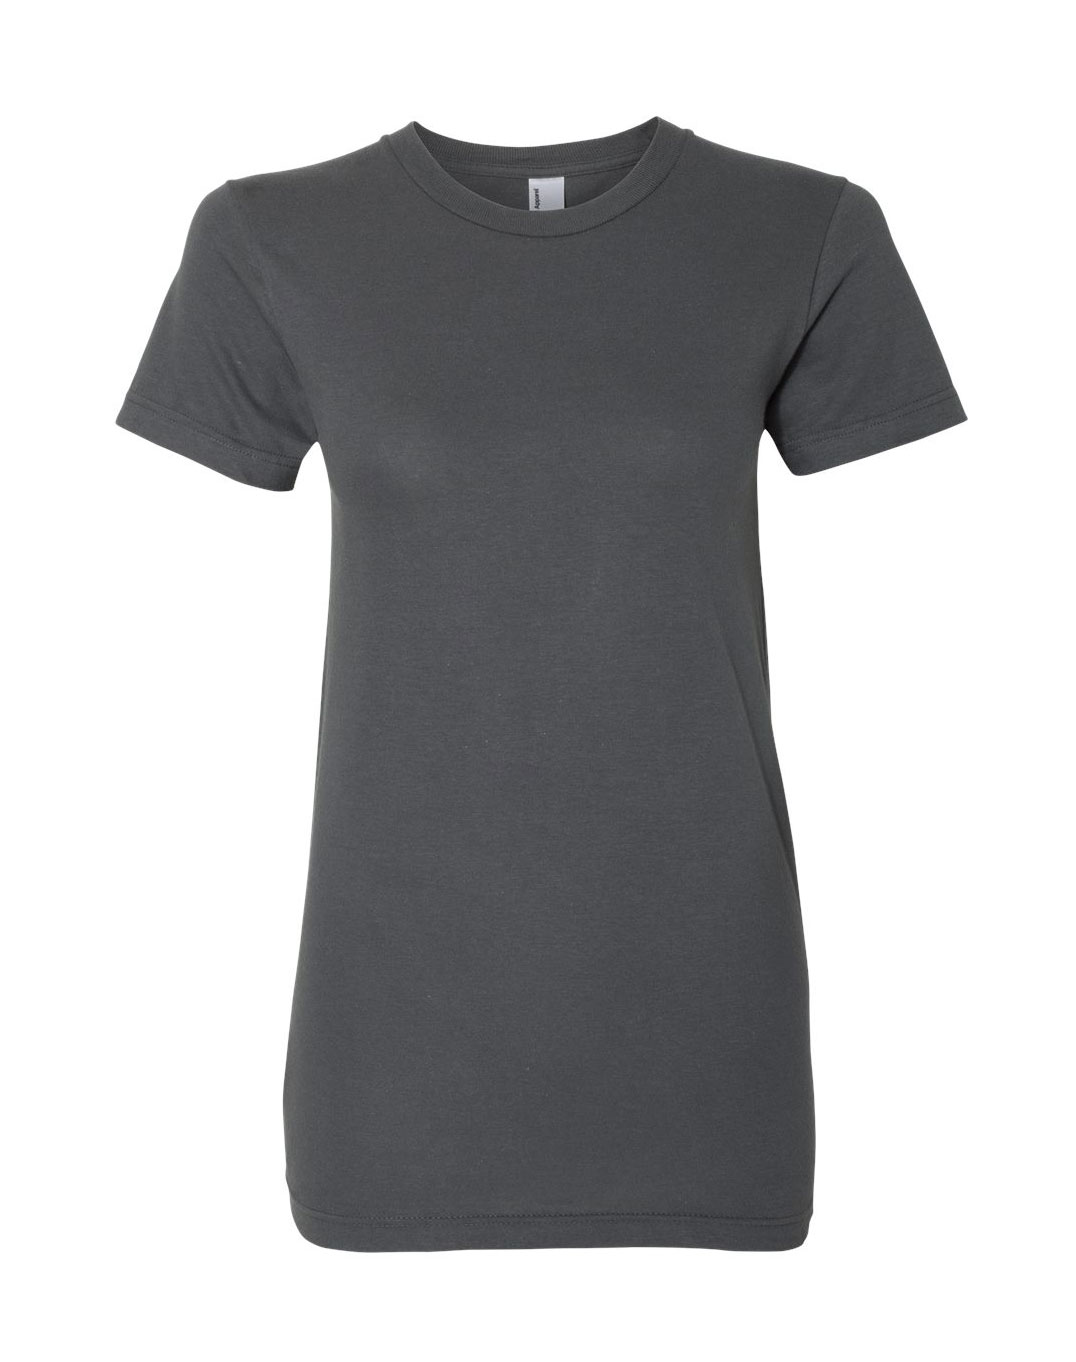 Fine Jersey Short Sleeve Ladies American Apparel Tee